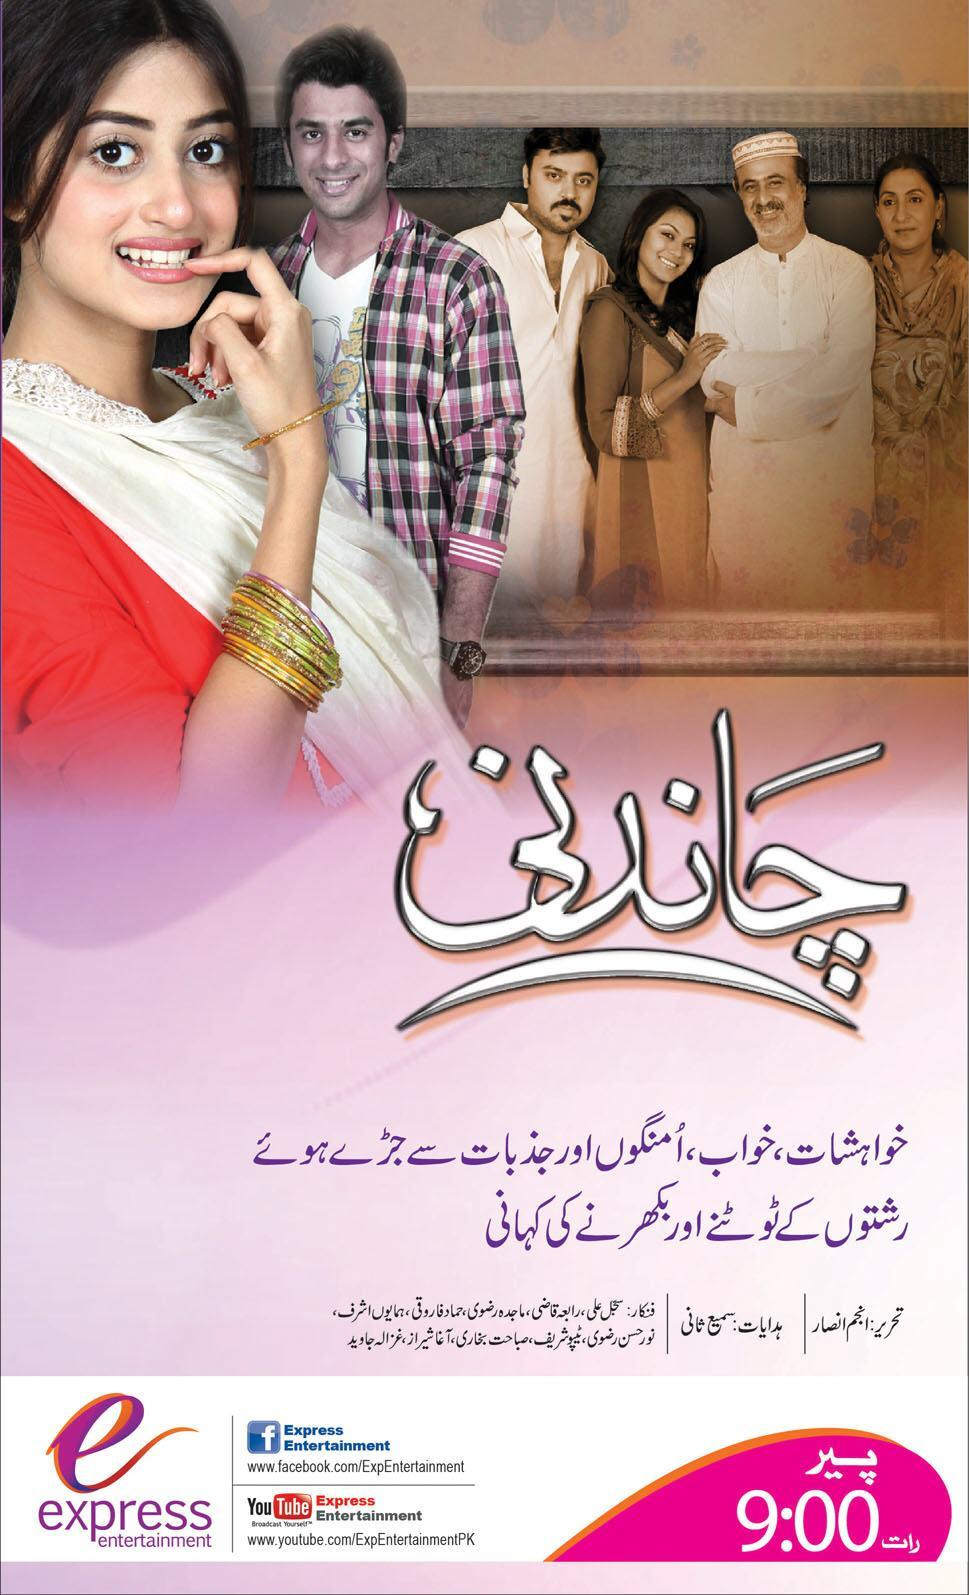 Chandni Drama Chandni Drama By Express Entertainment Channel